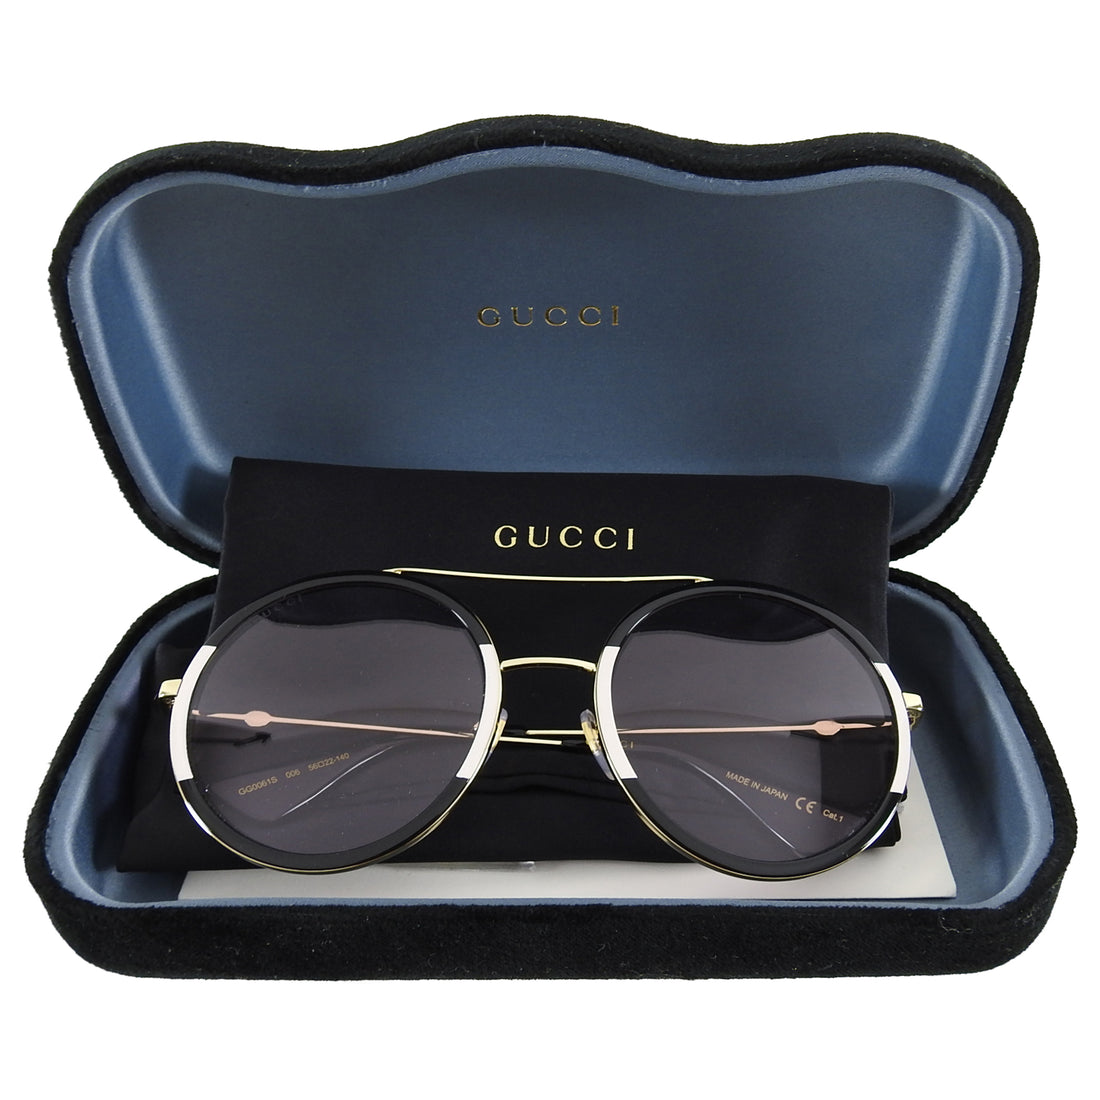 Gucci Black and White Round Light Tint Sunglasses GG0061S